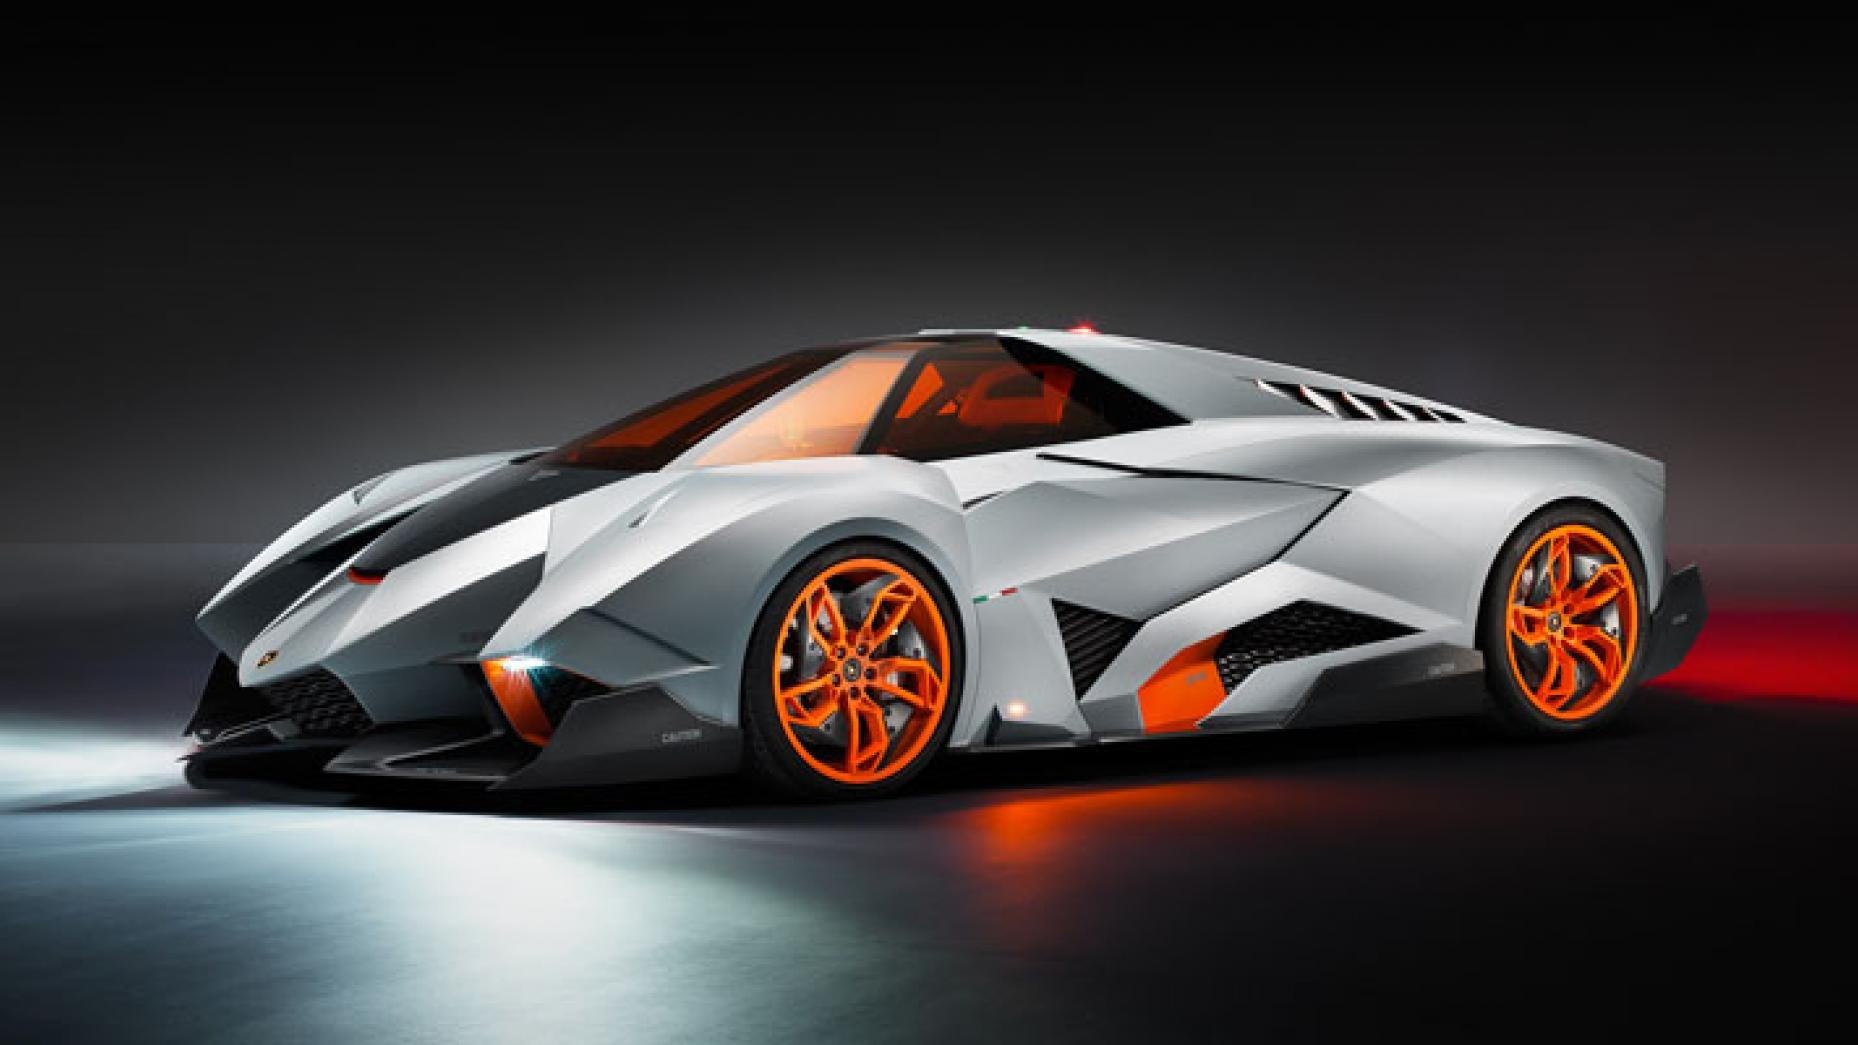 Lamborghini egoista clipart clipart royalty free Lamborghini Egoista Detailed Review Price and Detail clipart royalty free